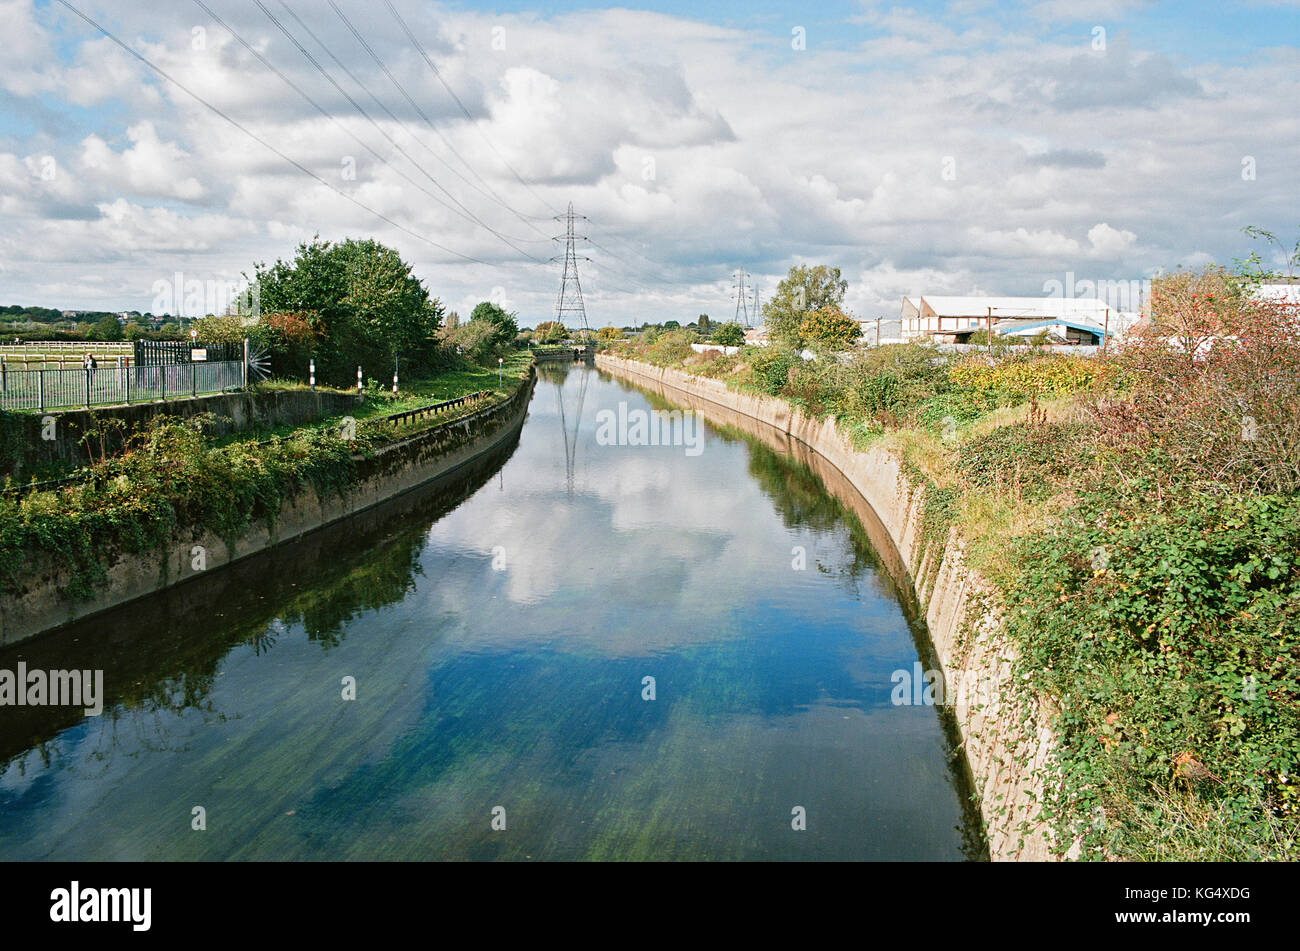 River Lea flood relief channel, on the edge of Walthamstow Marshes, North London UK - Stock Image